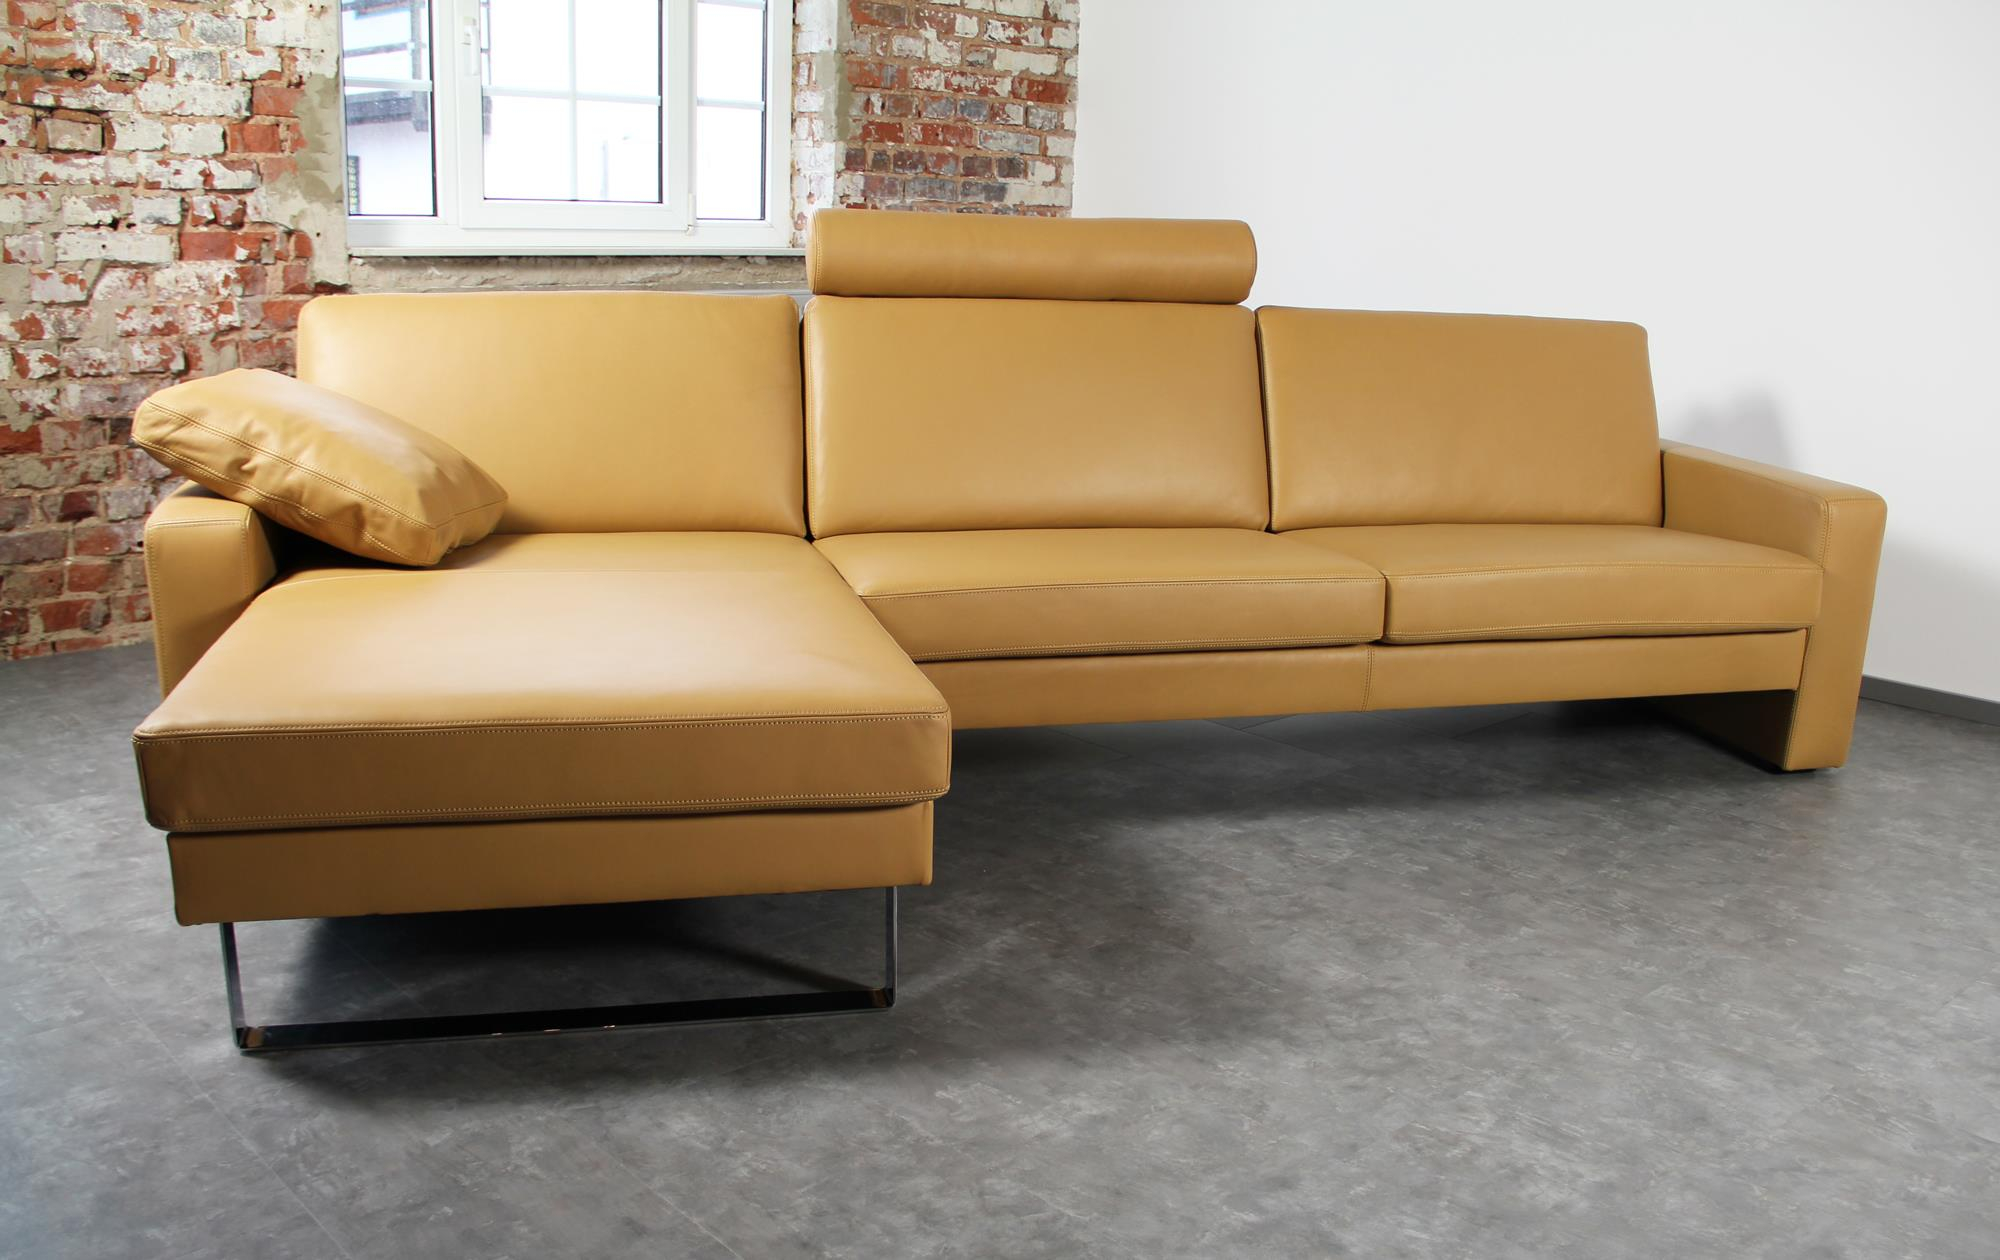 Couchtisch Liverpool Ecksofa Liverpool Showroom Sessel Manufaktur De